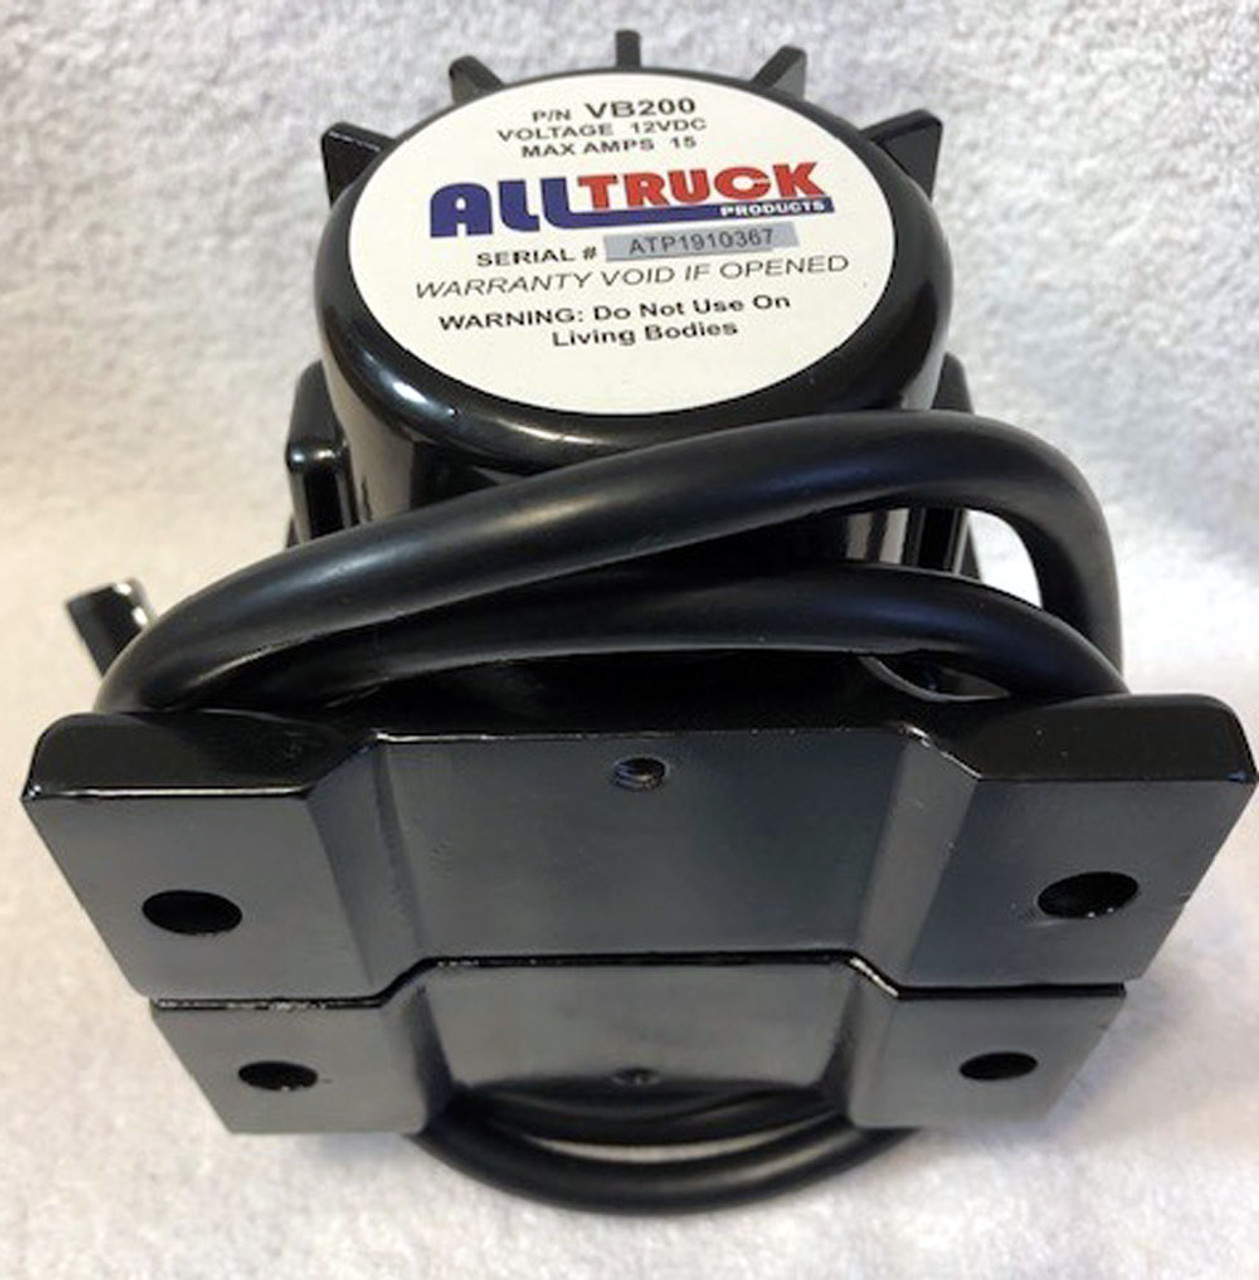 ALL TRUCK PRODUCTS ATPVB080 VIBRATOR 2